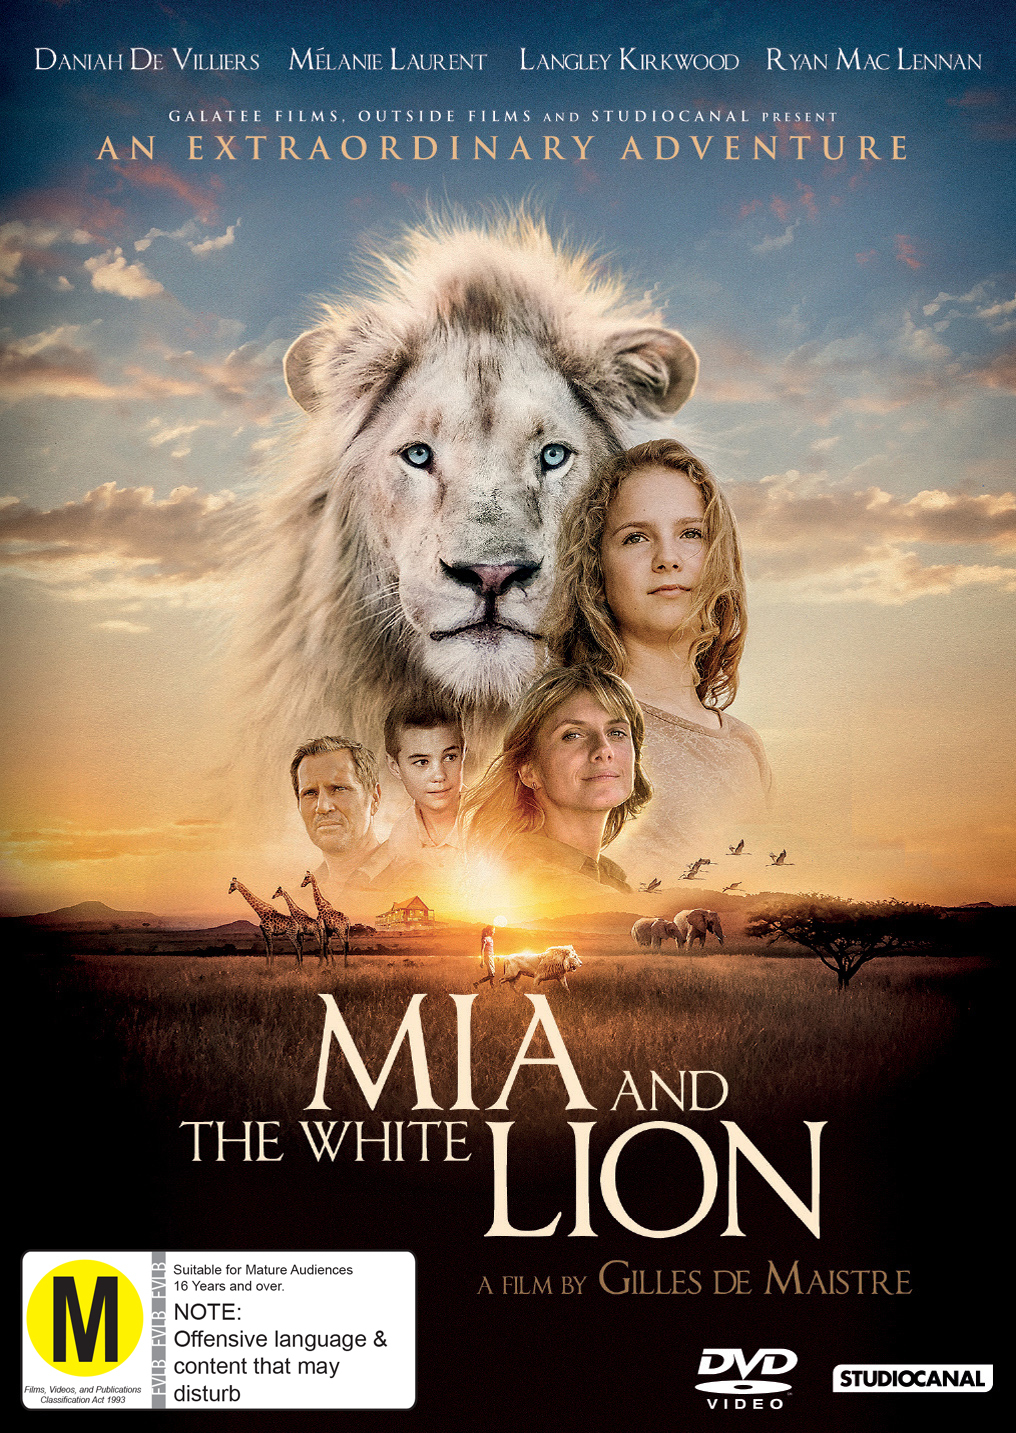 Mia And The White Lion | DVD | On Sale Now | at Mighty Ape NZ